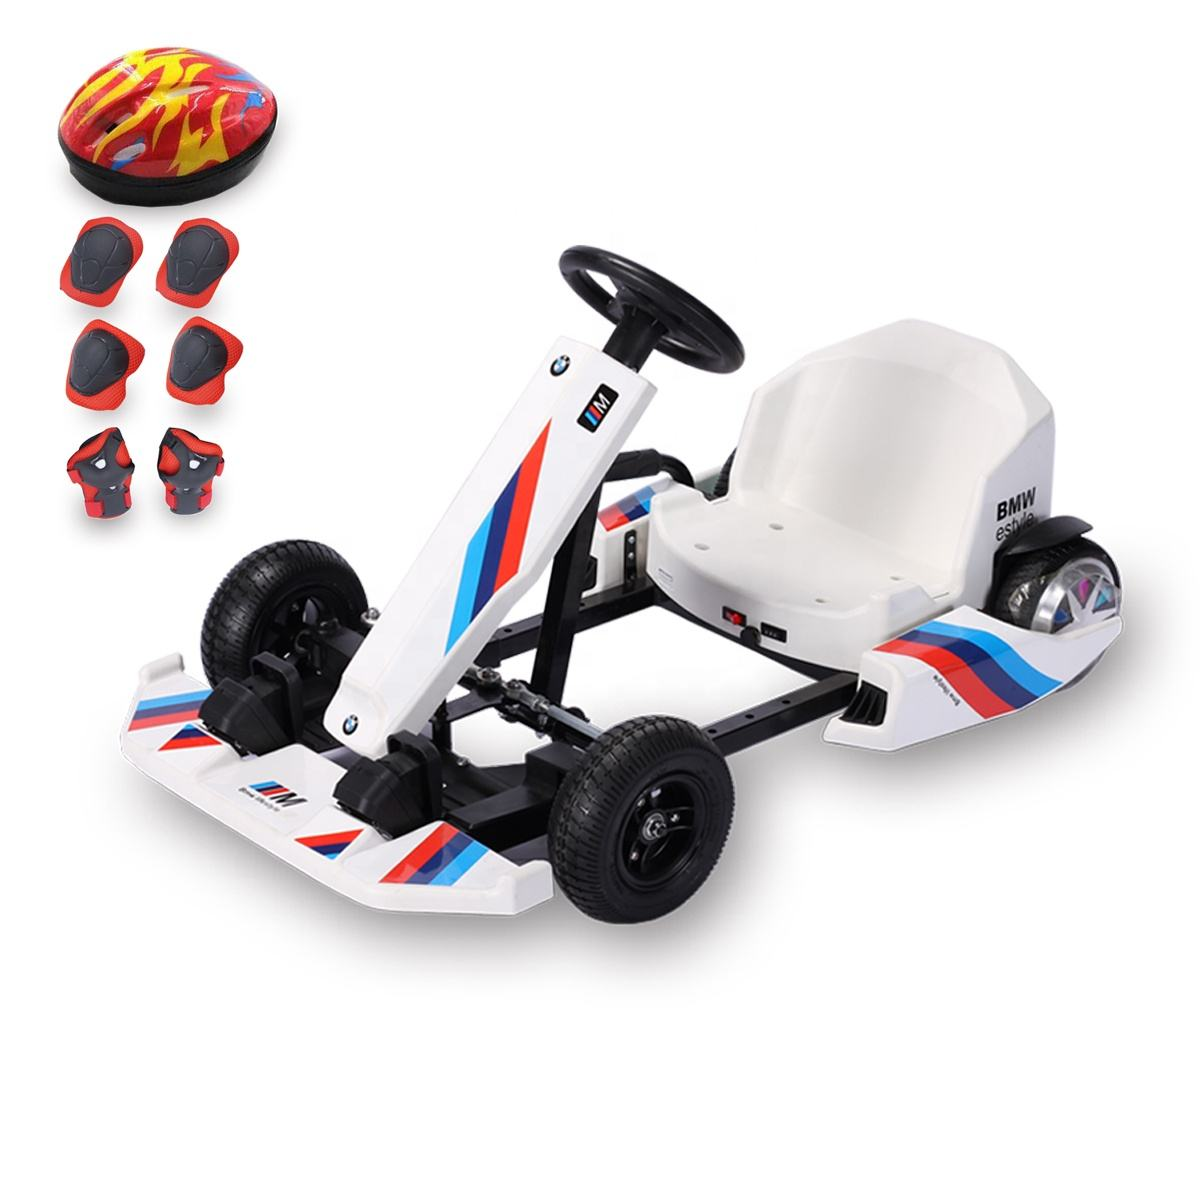 China Kids Street Legal Carreras De Karting Volwassen Kids Racing Elektrische Drift Go Kart Goedkope Voor Verkoop Racing Go-karts